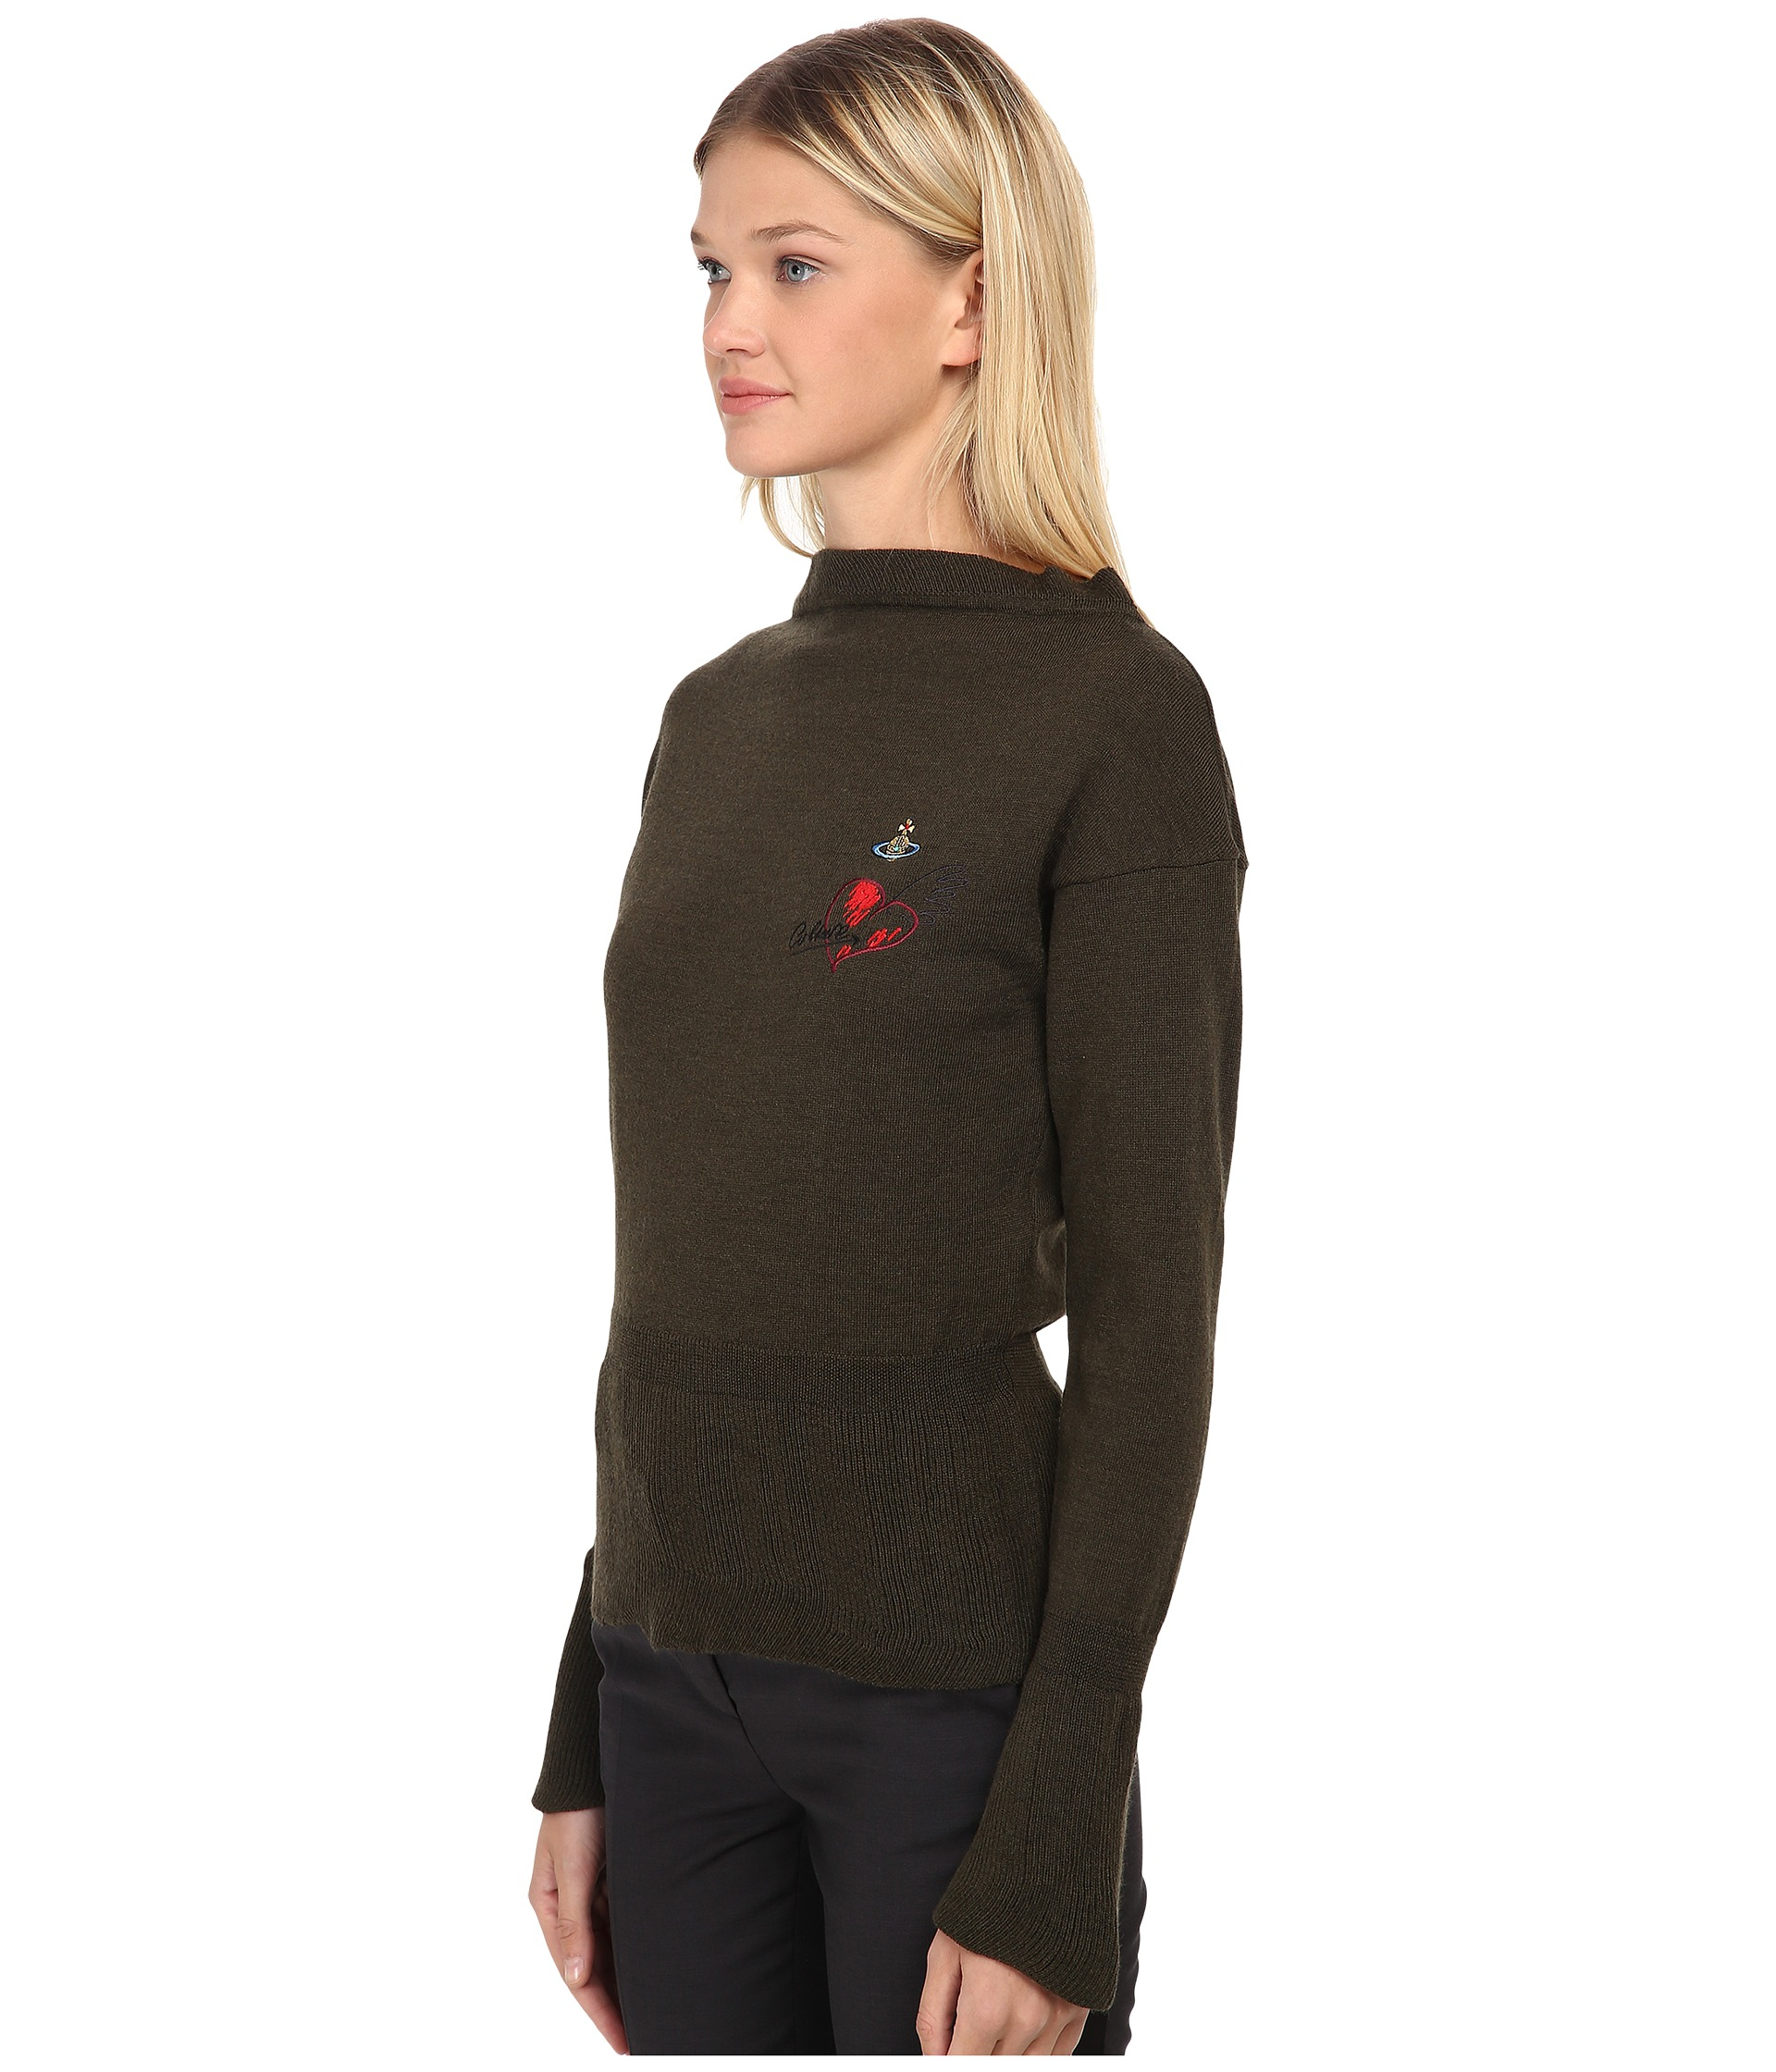 Vivienne westwood red label Basic Knitwear Classic Sweater in ...